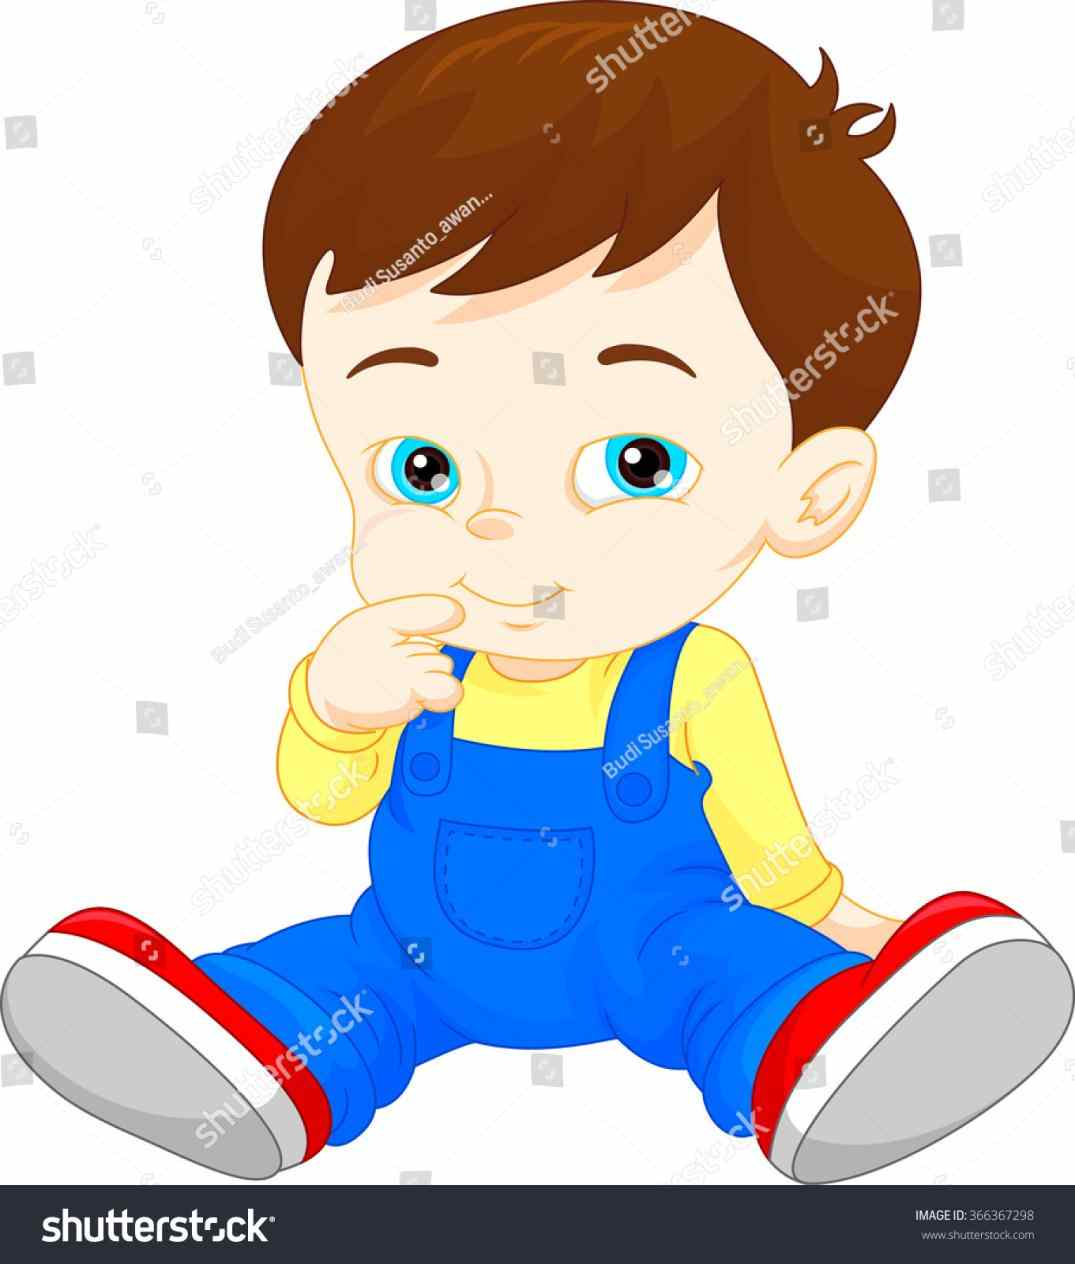 1075x1264 Drawing Crying Vector Baby Boy Sports Clipart Drawing Crying Stock